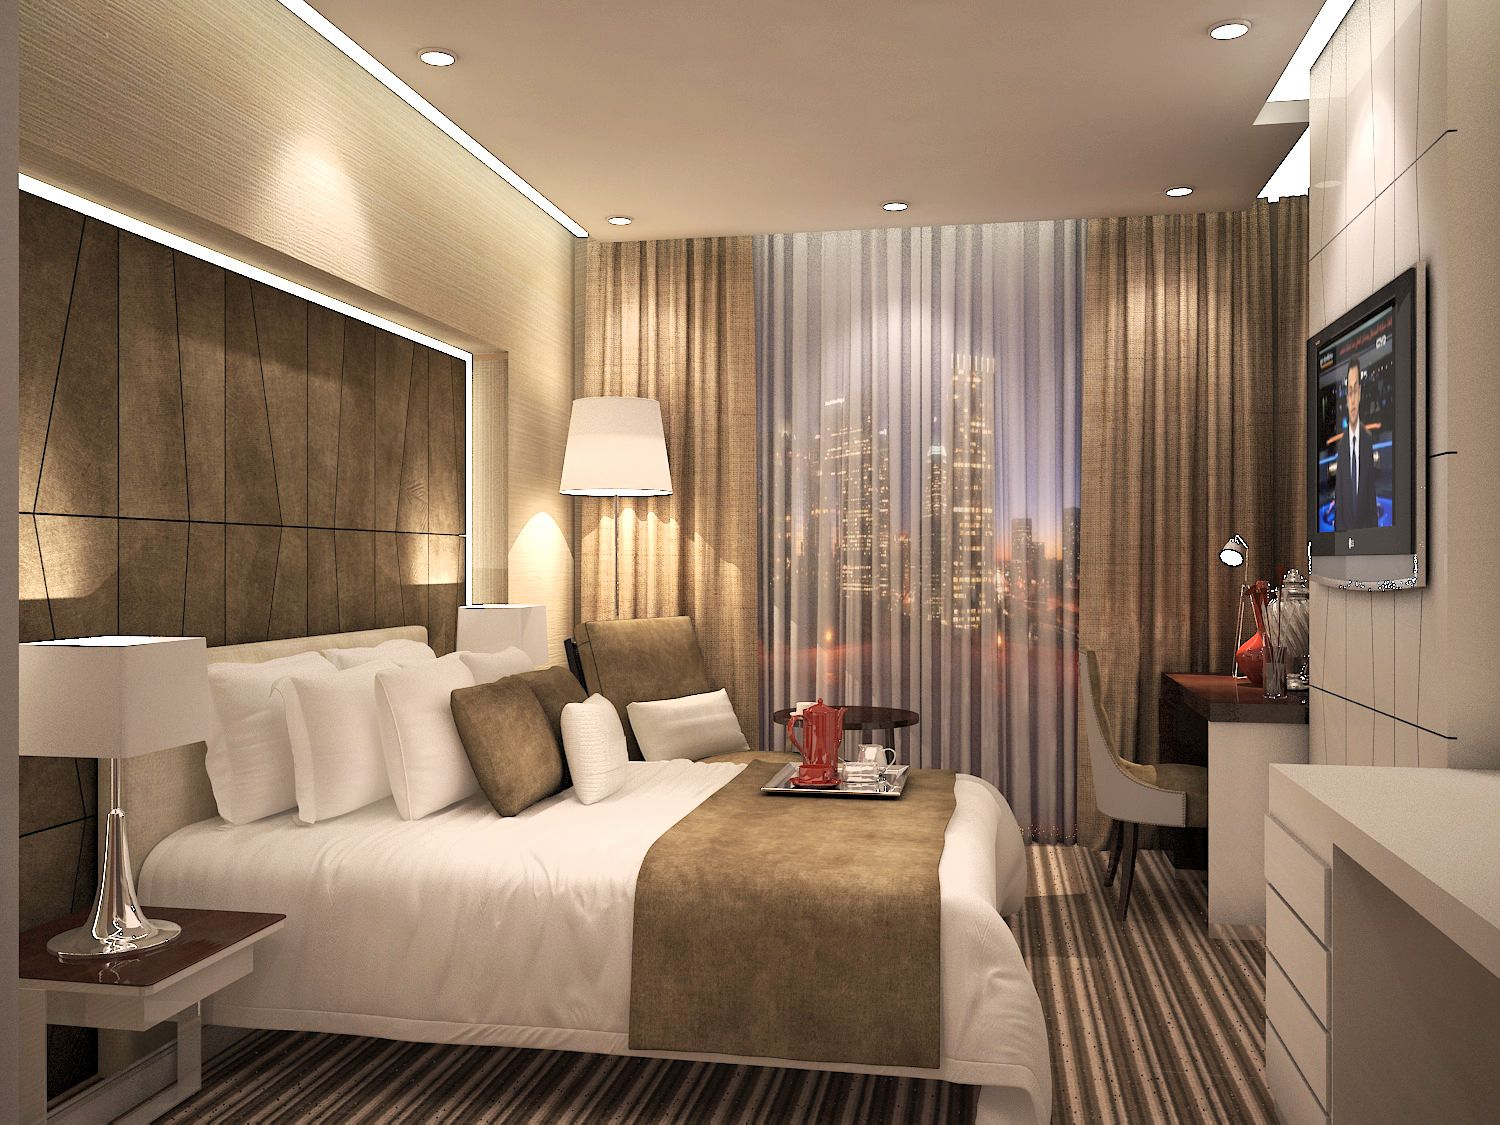 View interior design hotel room 5 star home design great for Hotel room interior images